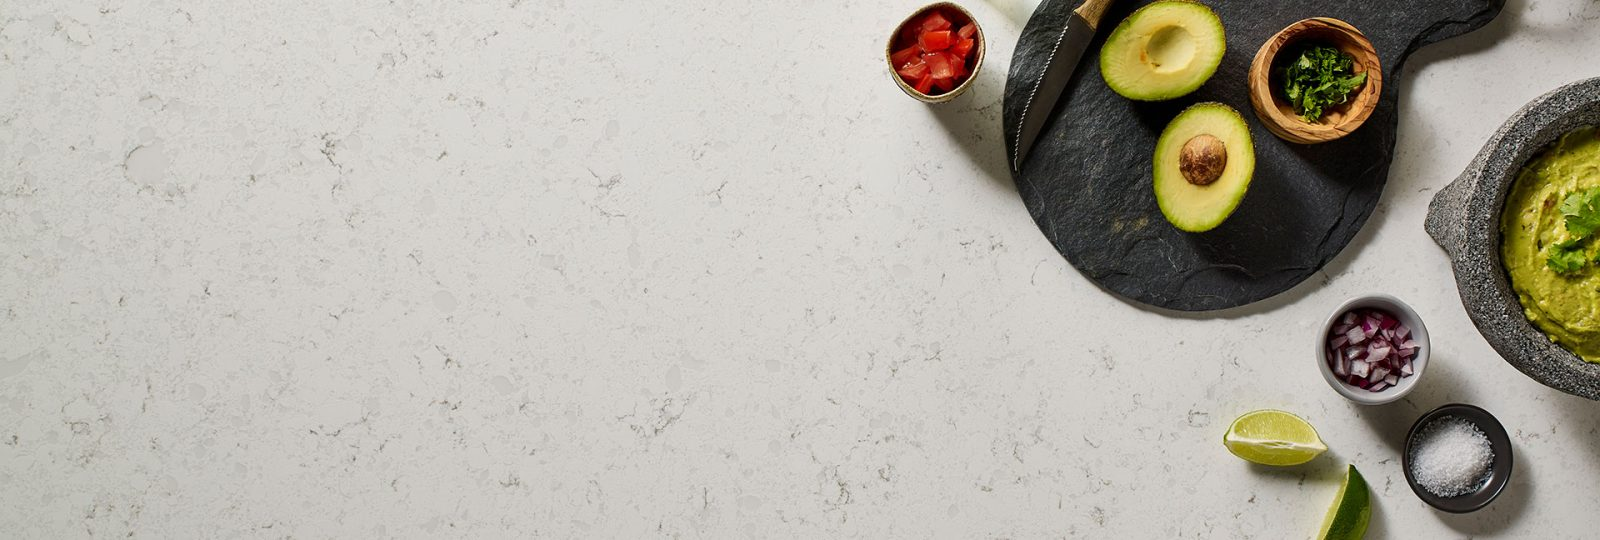 light color quartz countertops